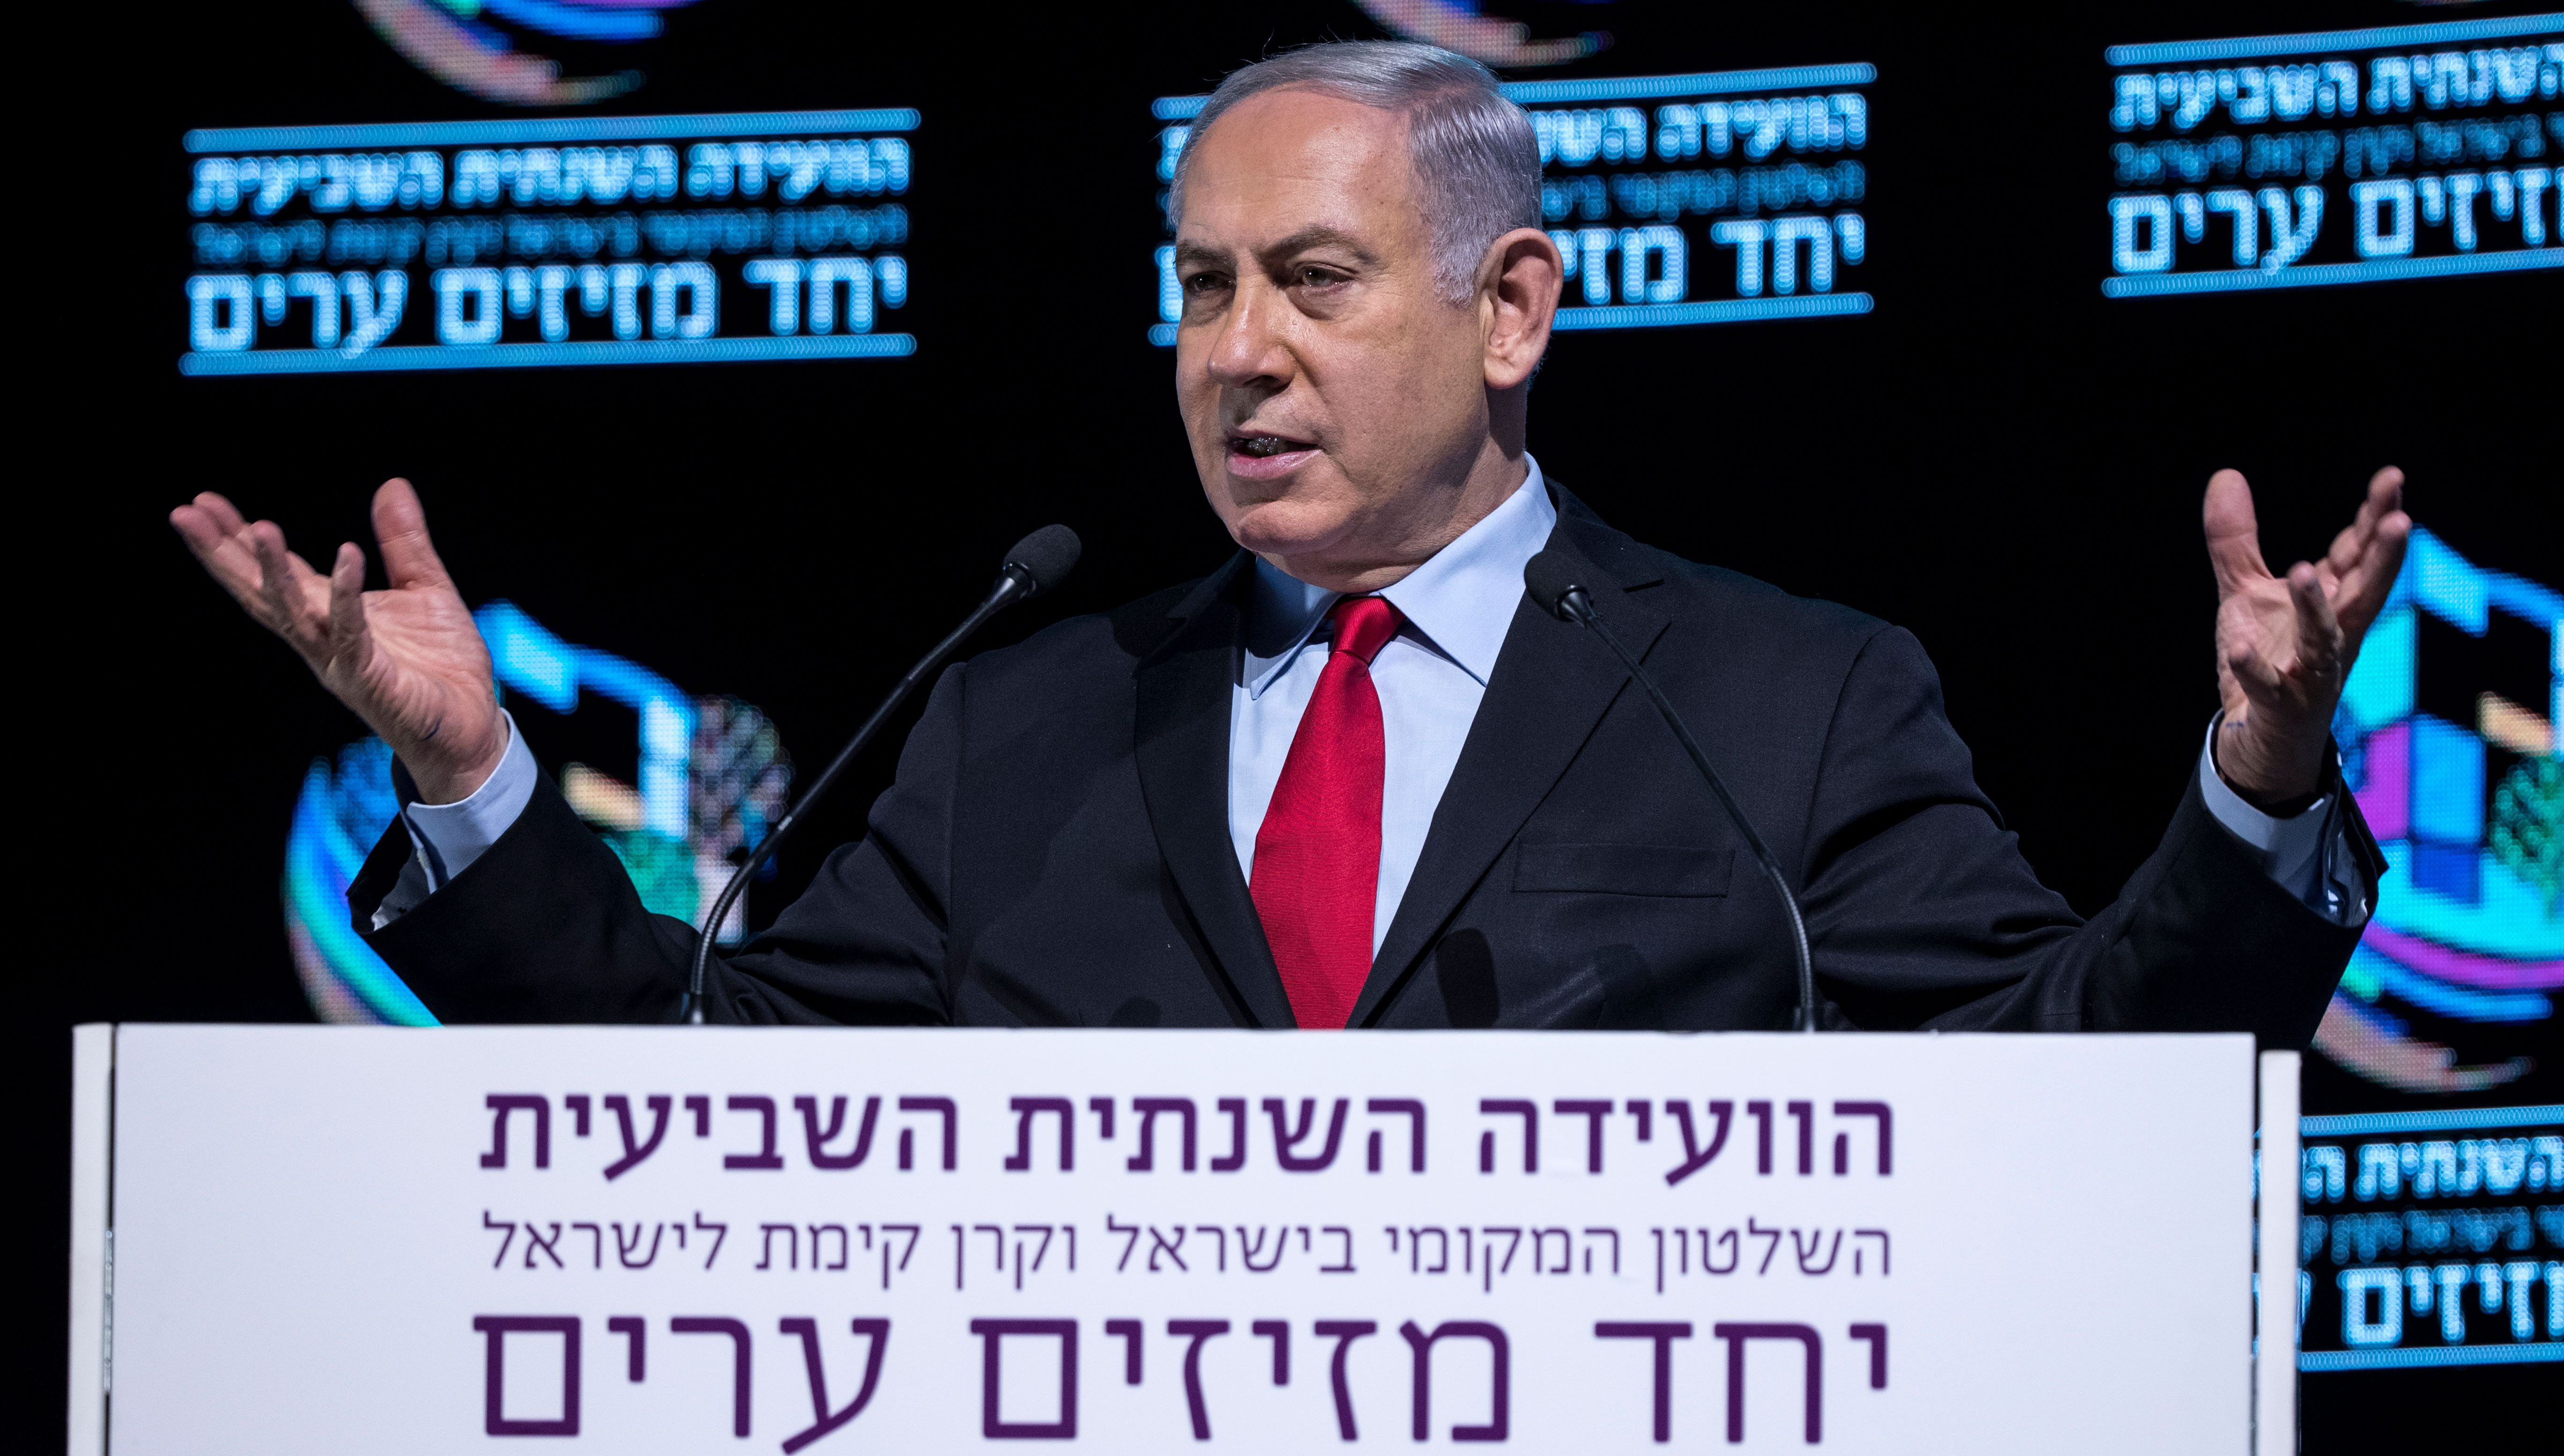 Weekly briefing: Netanyahu faces a whirlwind of investigations